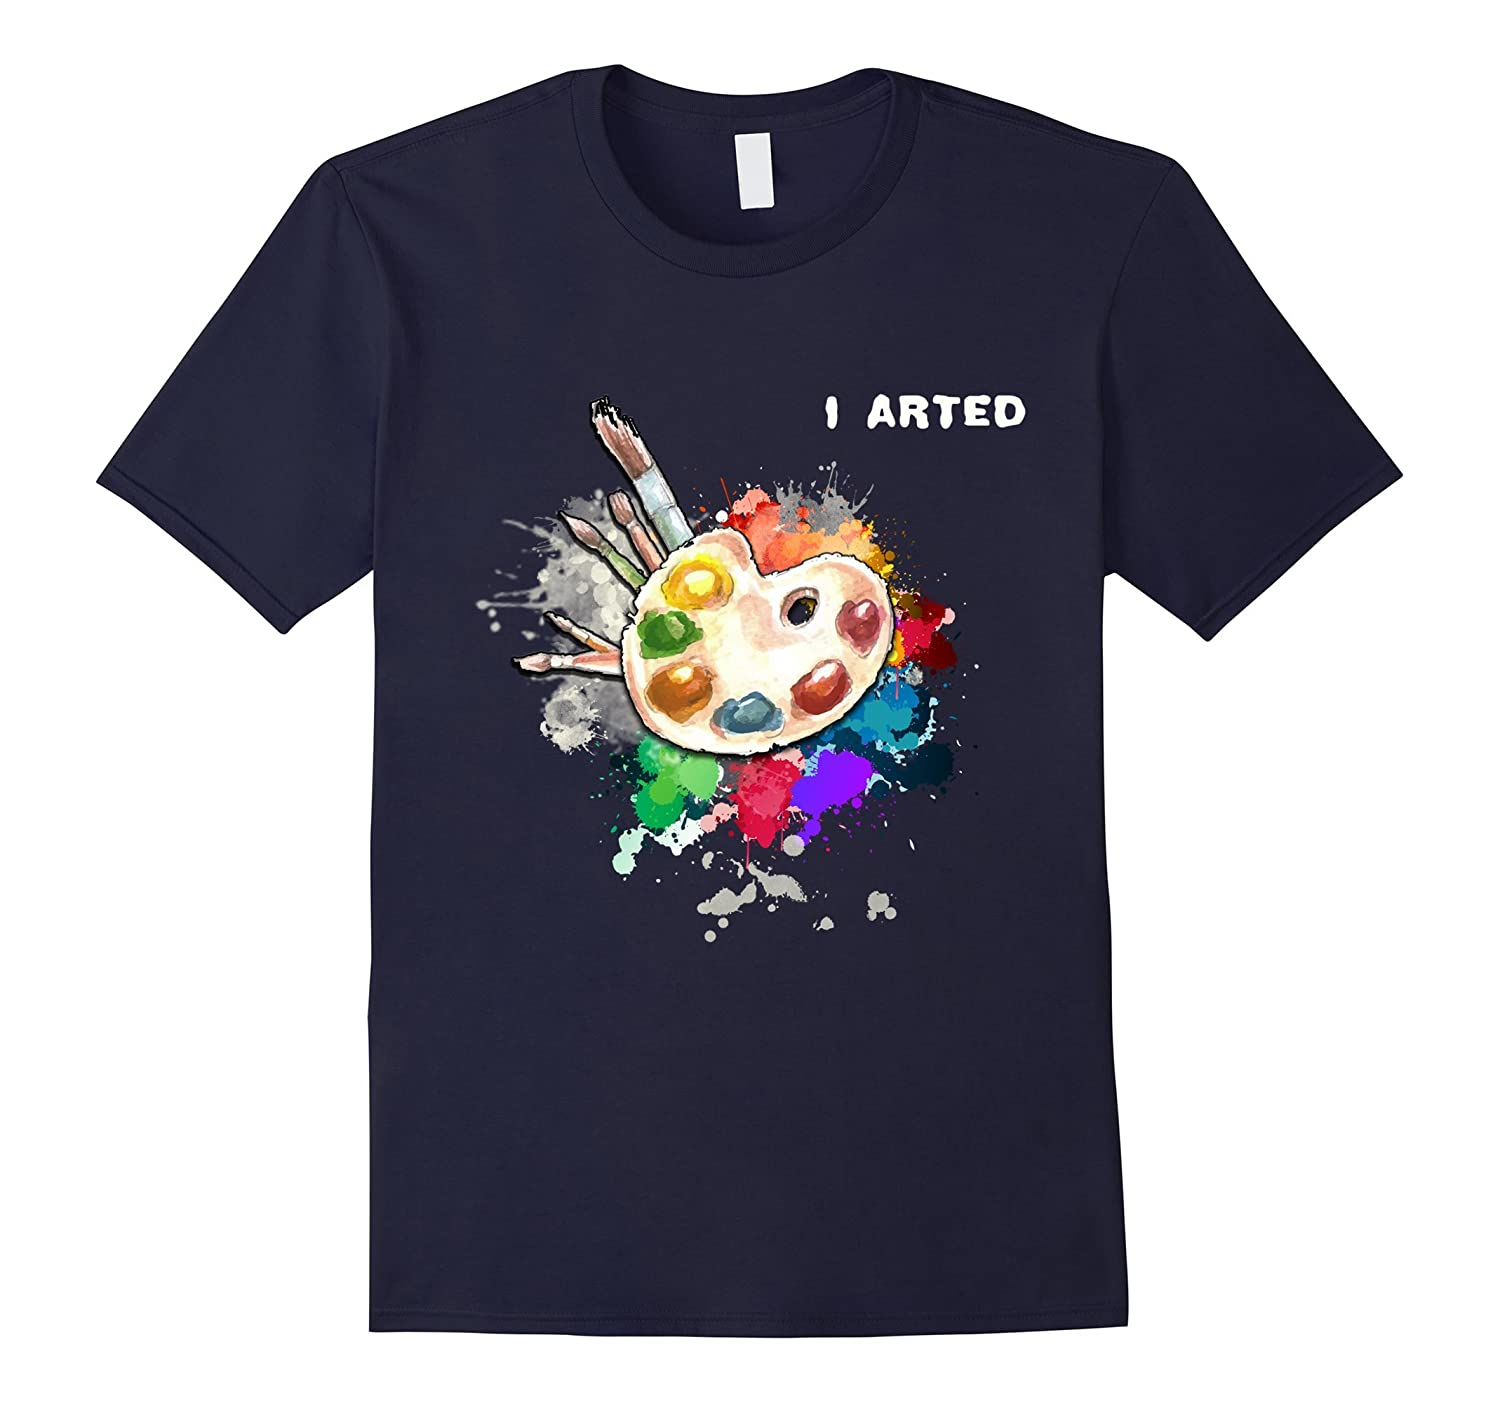 I Arted Funny Art T-Shirt Cool Graphic Colorful Artist Gift-T-Shirt